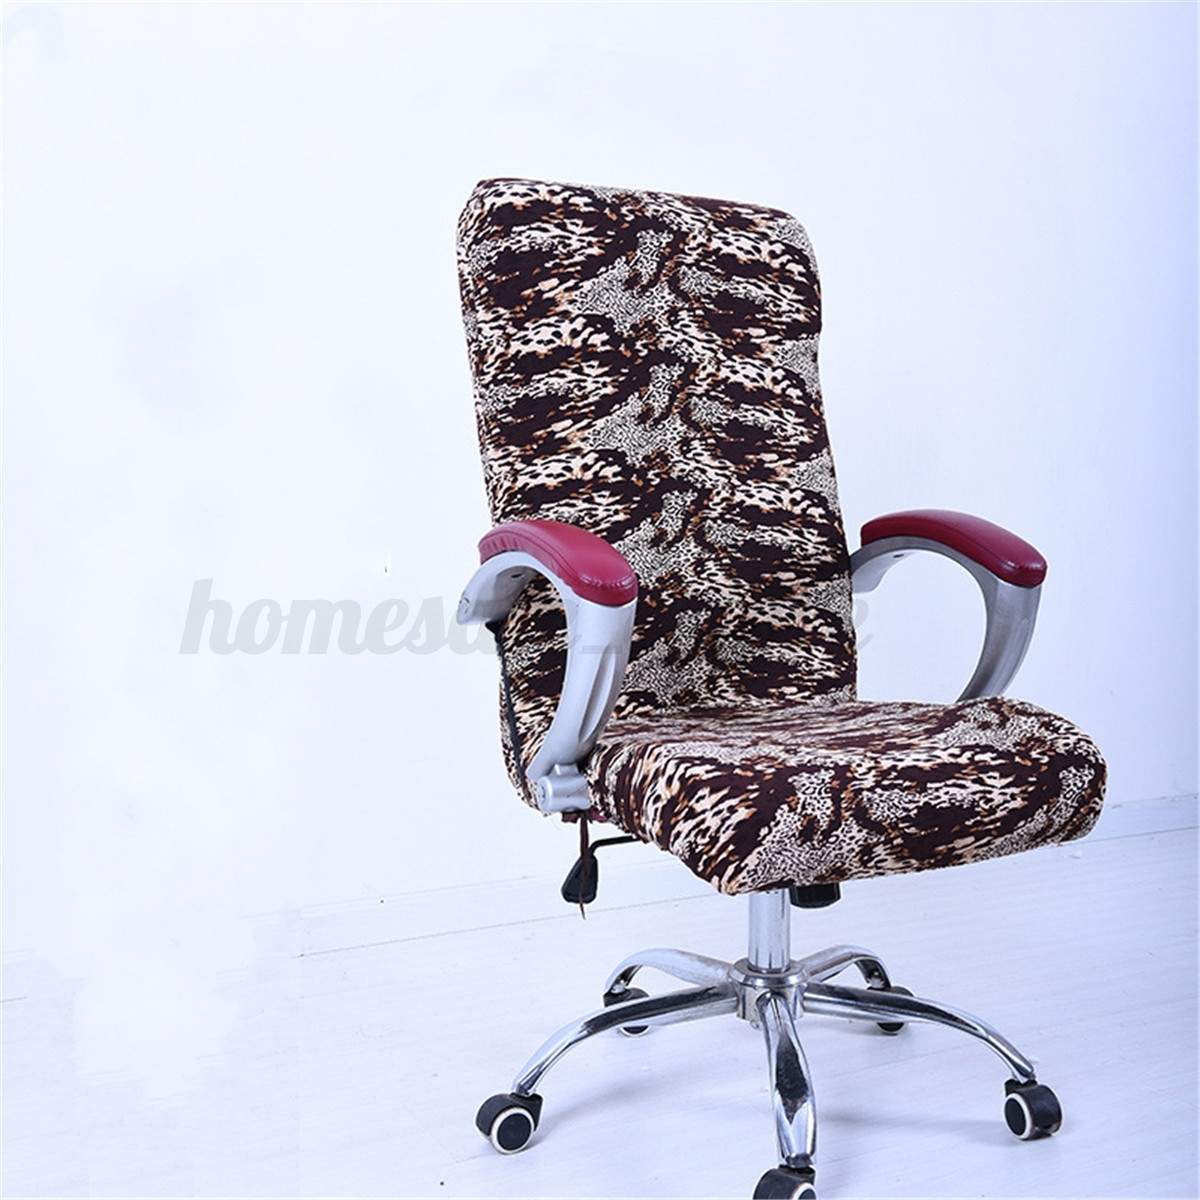 swivel chair covers outdoor recliner chairs uk 7 color elastic office cover slipcover